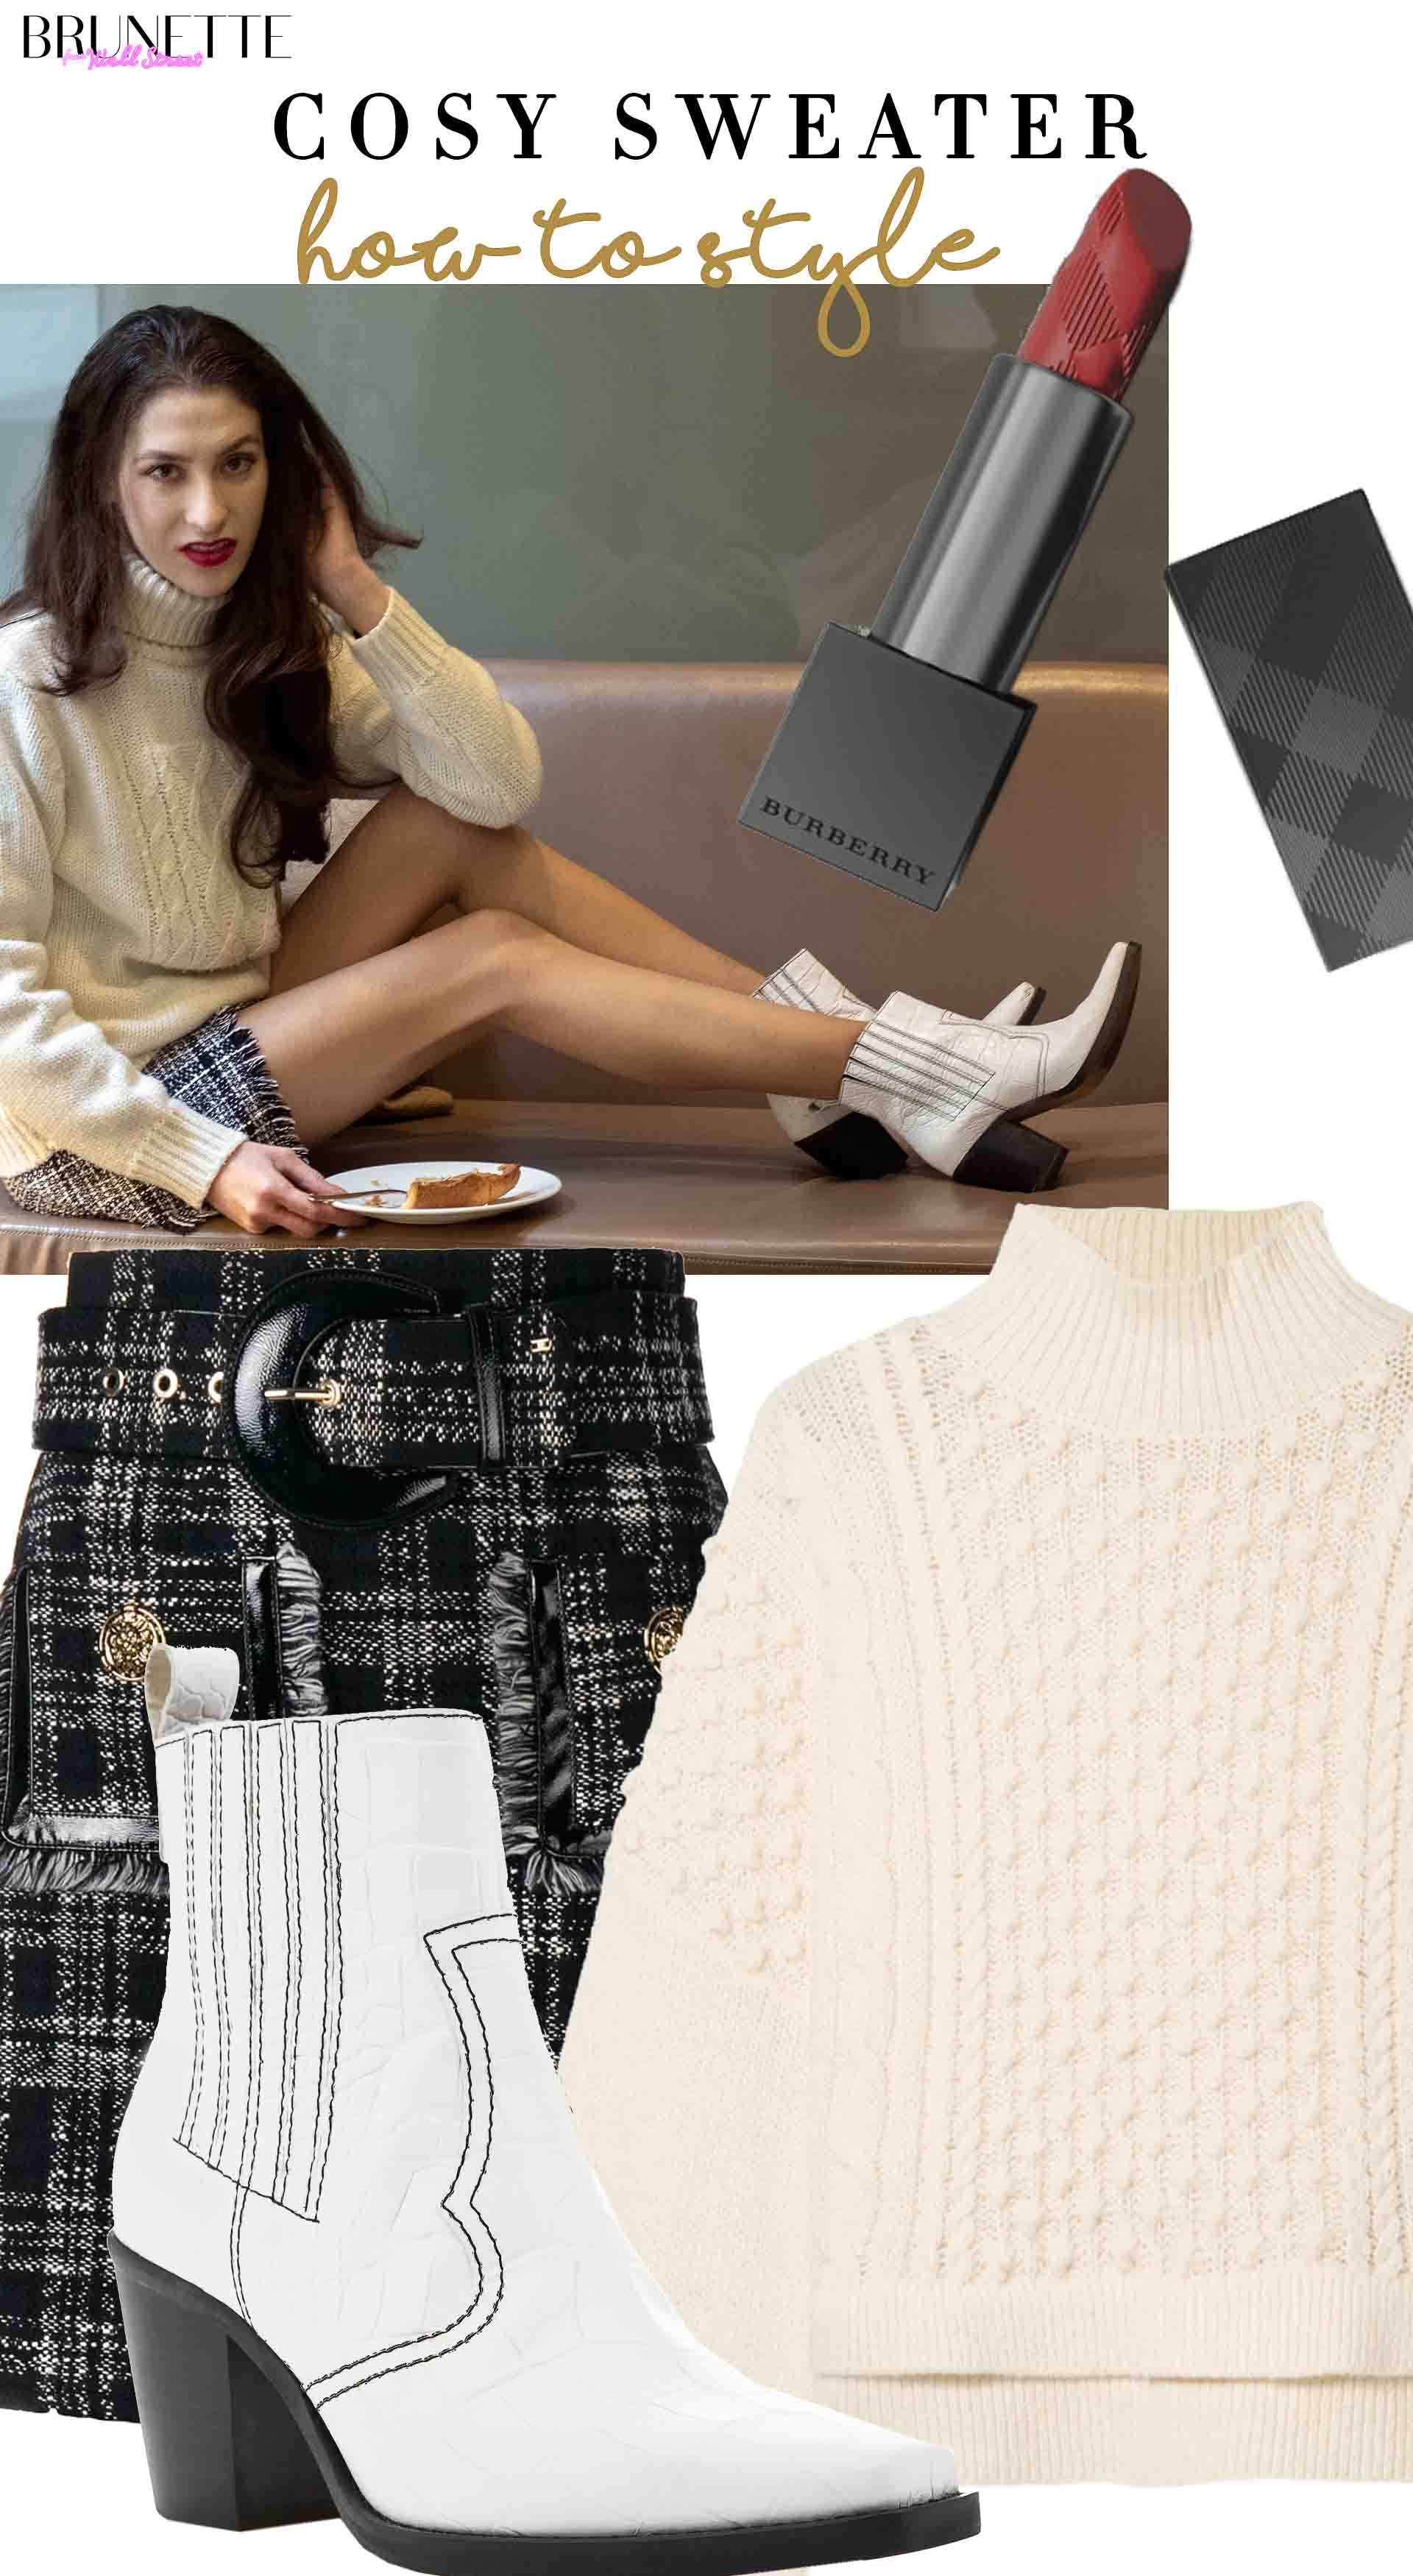 Brunette from Wall Street how to style cosy sweater trurleneck anc cowboy boots for holidays